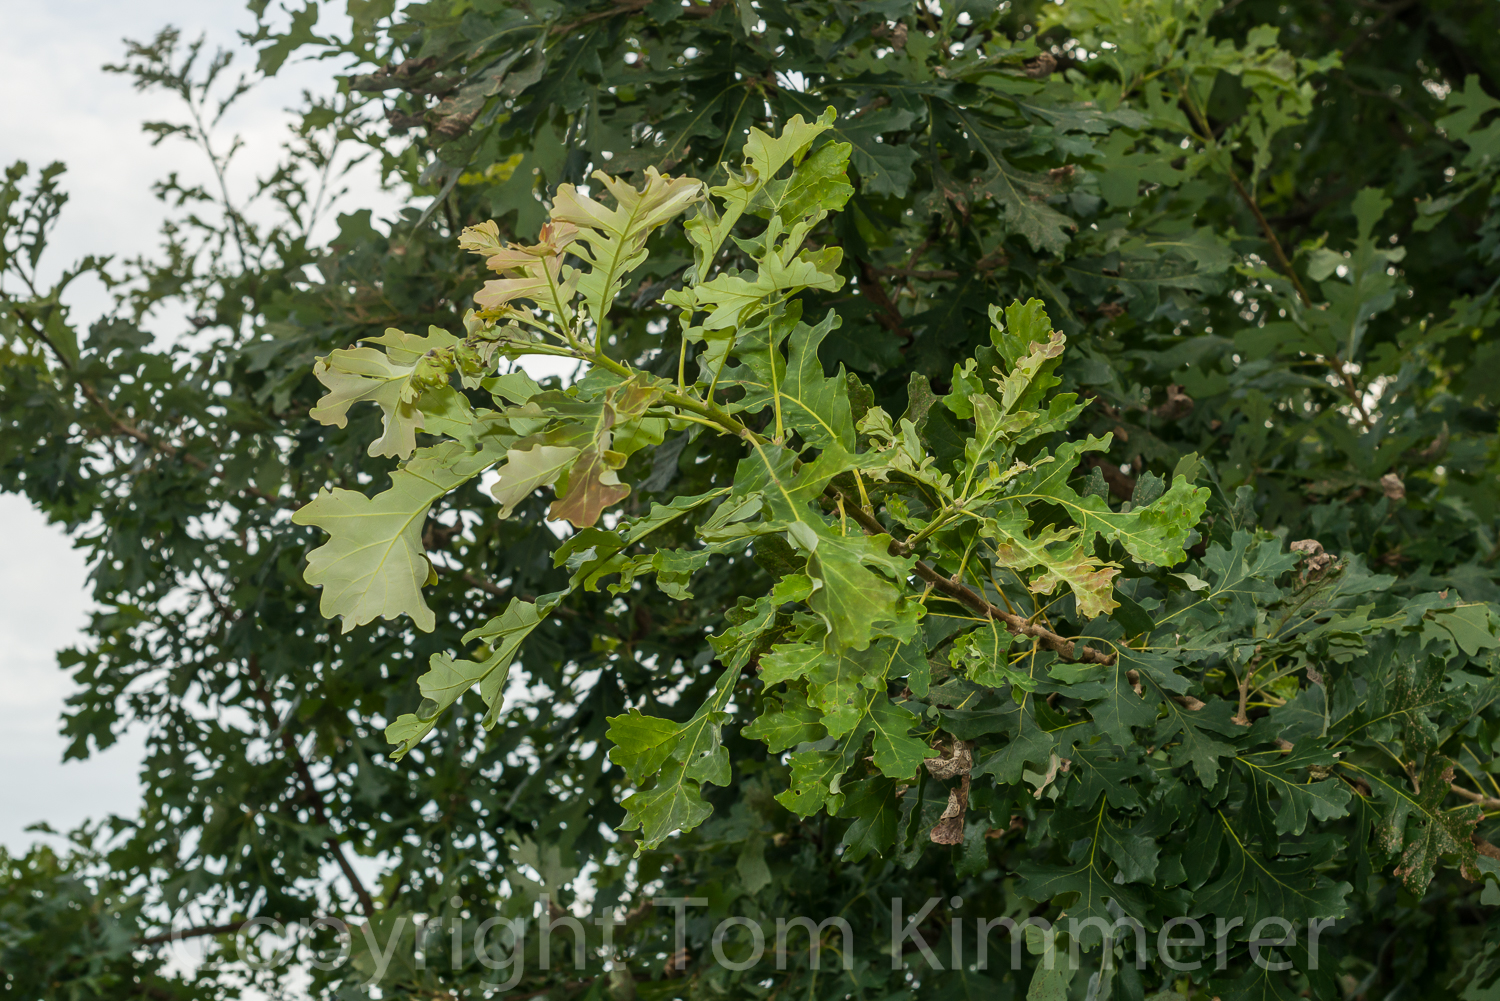 September flush of growth in bur oak